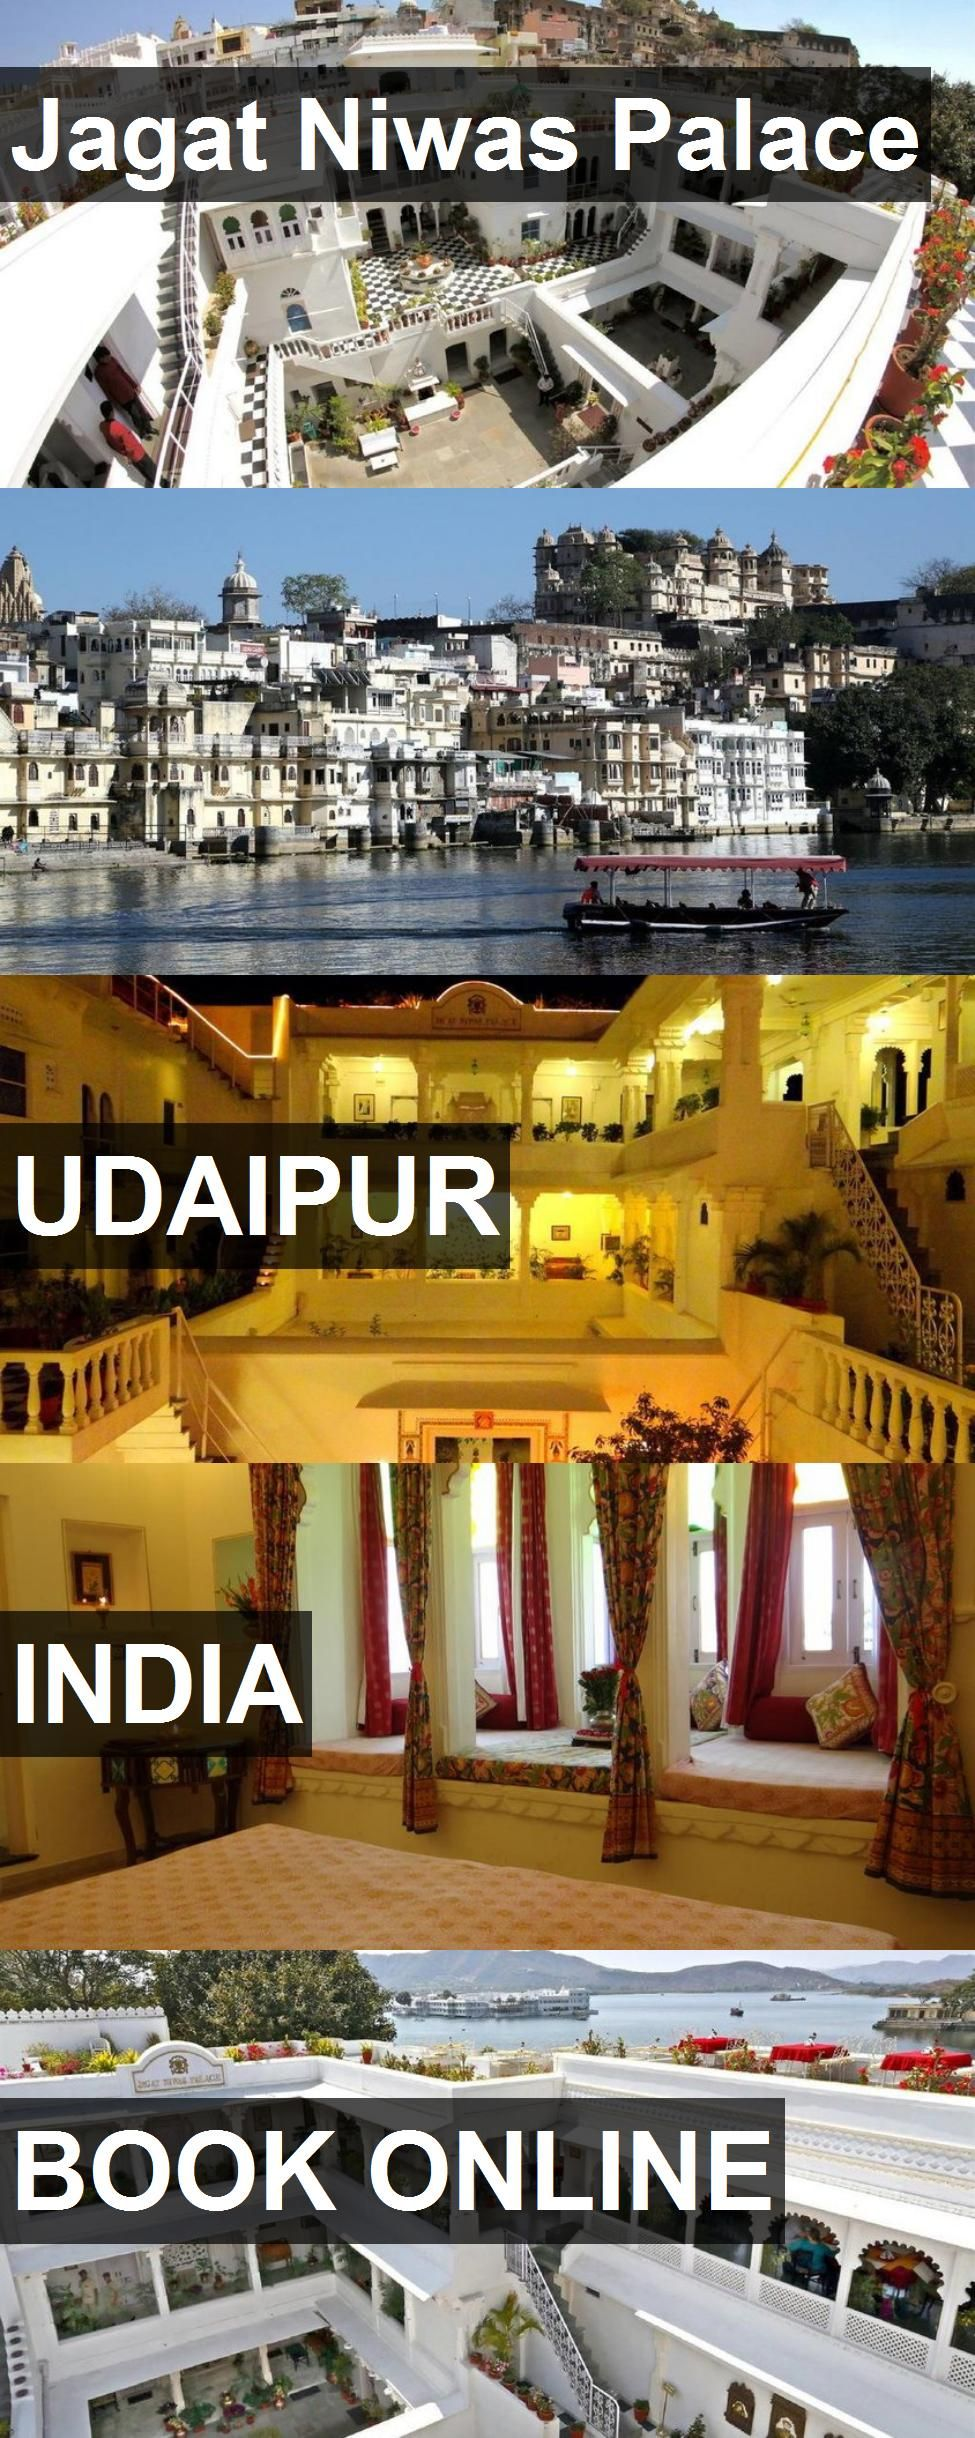 Hotel Jagat Niwas Palace in Udaipur, India. For more